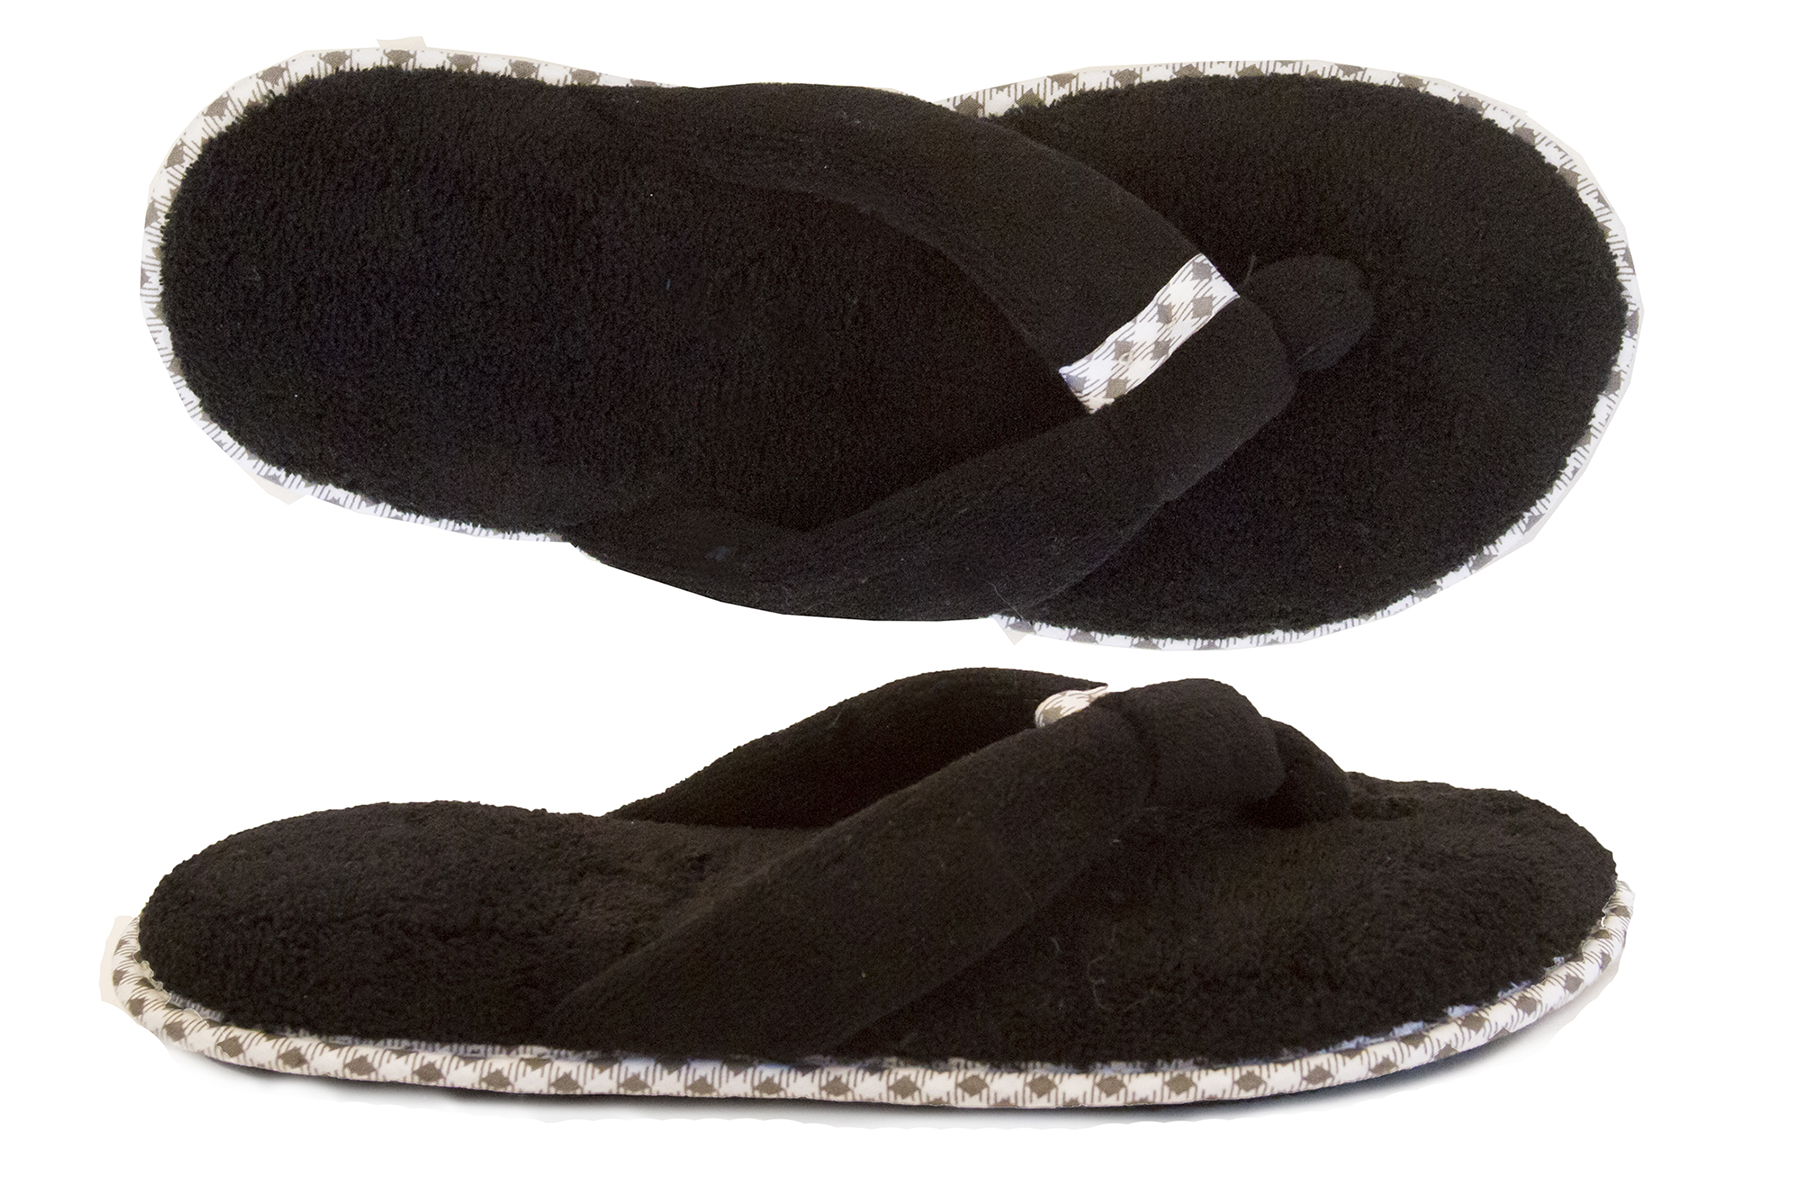 4b77a31f2d41 Isotoner Women s Microterry Olivia Thong Slipper Black 6.5-7